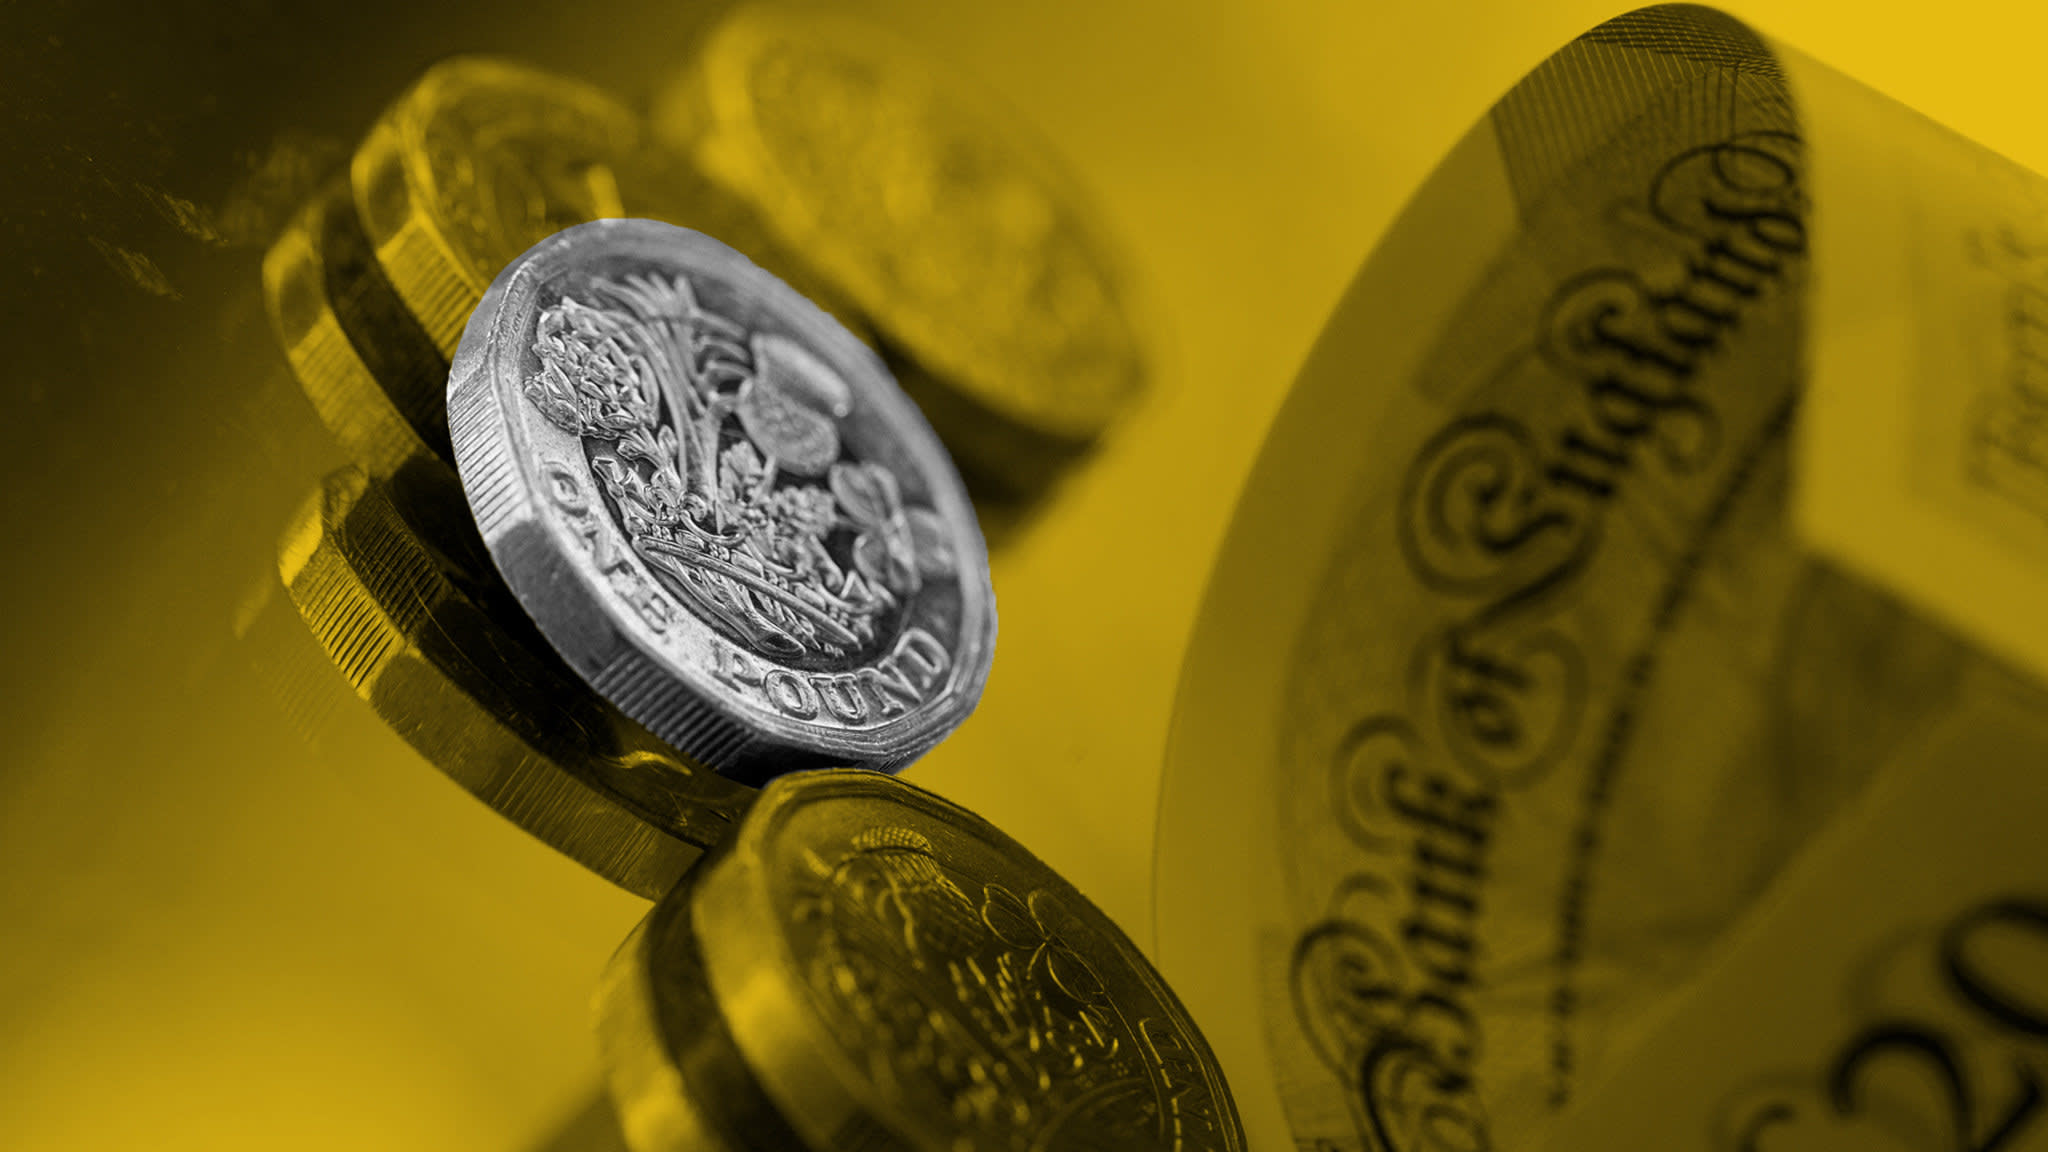 Update: Brewin to review if MPS tax refundable as VAT scrapped